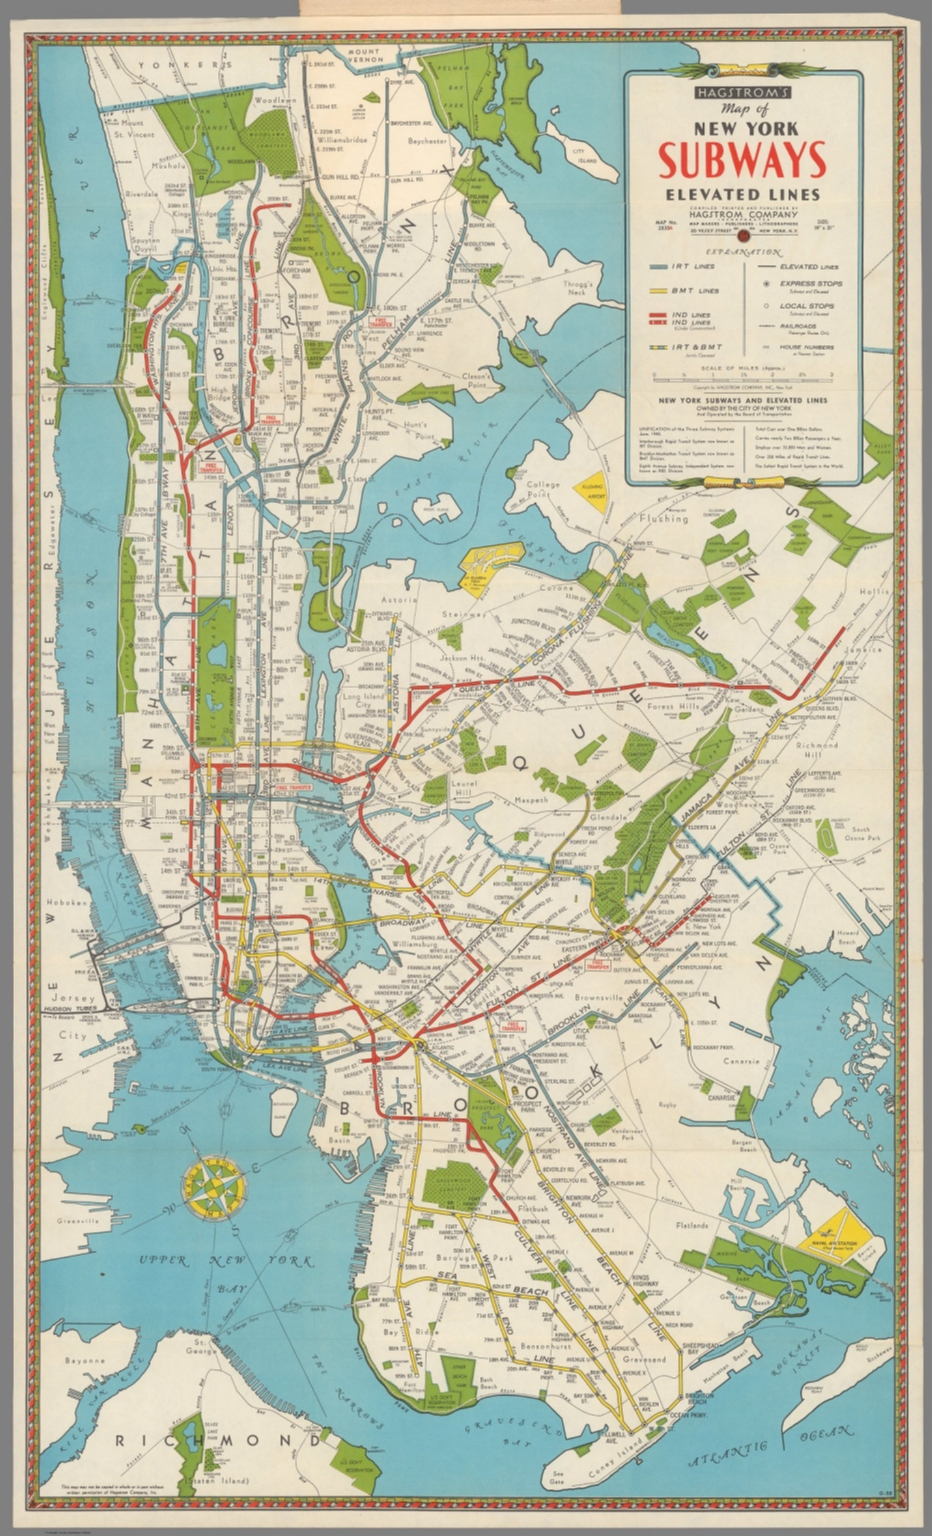 Picture Of New York Map.Hagstrom S Map Of New York Subways Elevated Lines David Rumsey